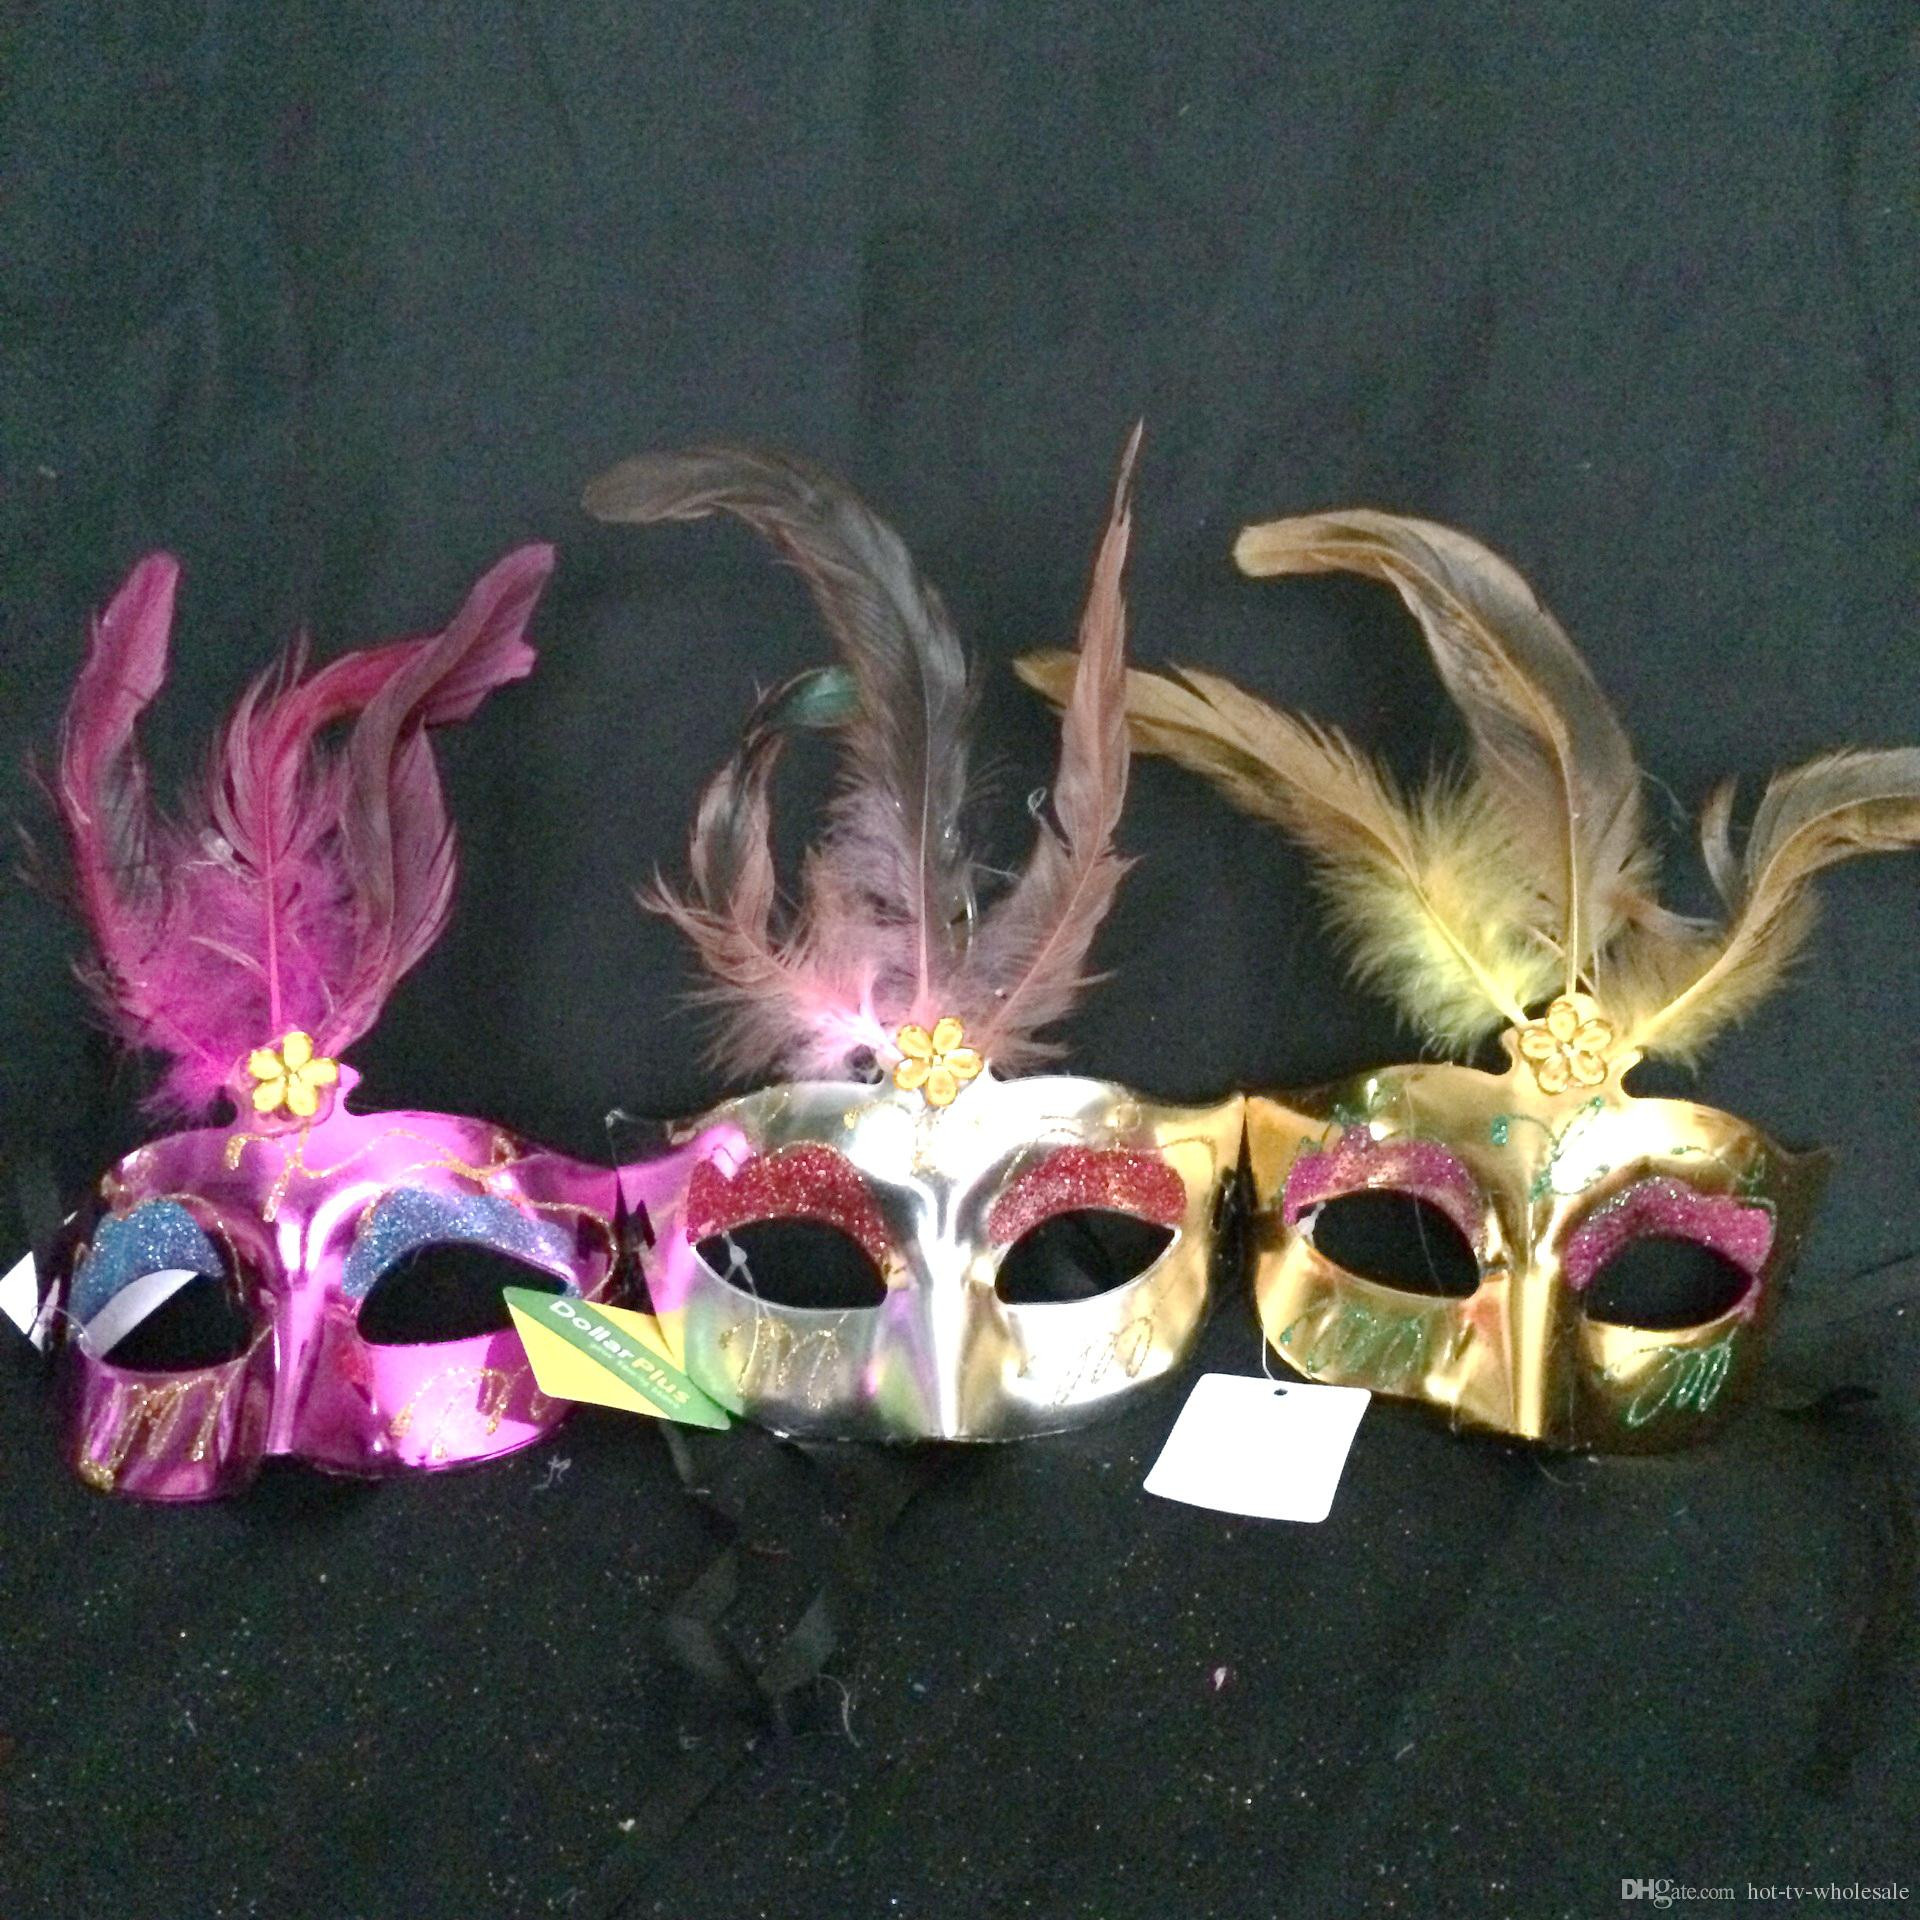 Ginger Vases wholesale Of 2016 Hot Sales Women Spray Paint Crystal Feather Mask Venetian Party Pertaining to Party Decoration Carnival Mardi Gras Bar Prop Wedding Gift Crystal Feather Mask Girl Mask Party Mask Online with 1 12 Piece On Hot Tv wholesales Store